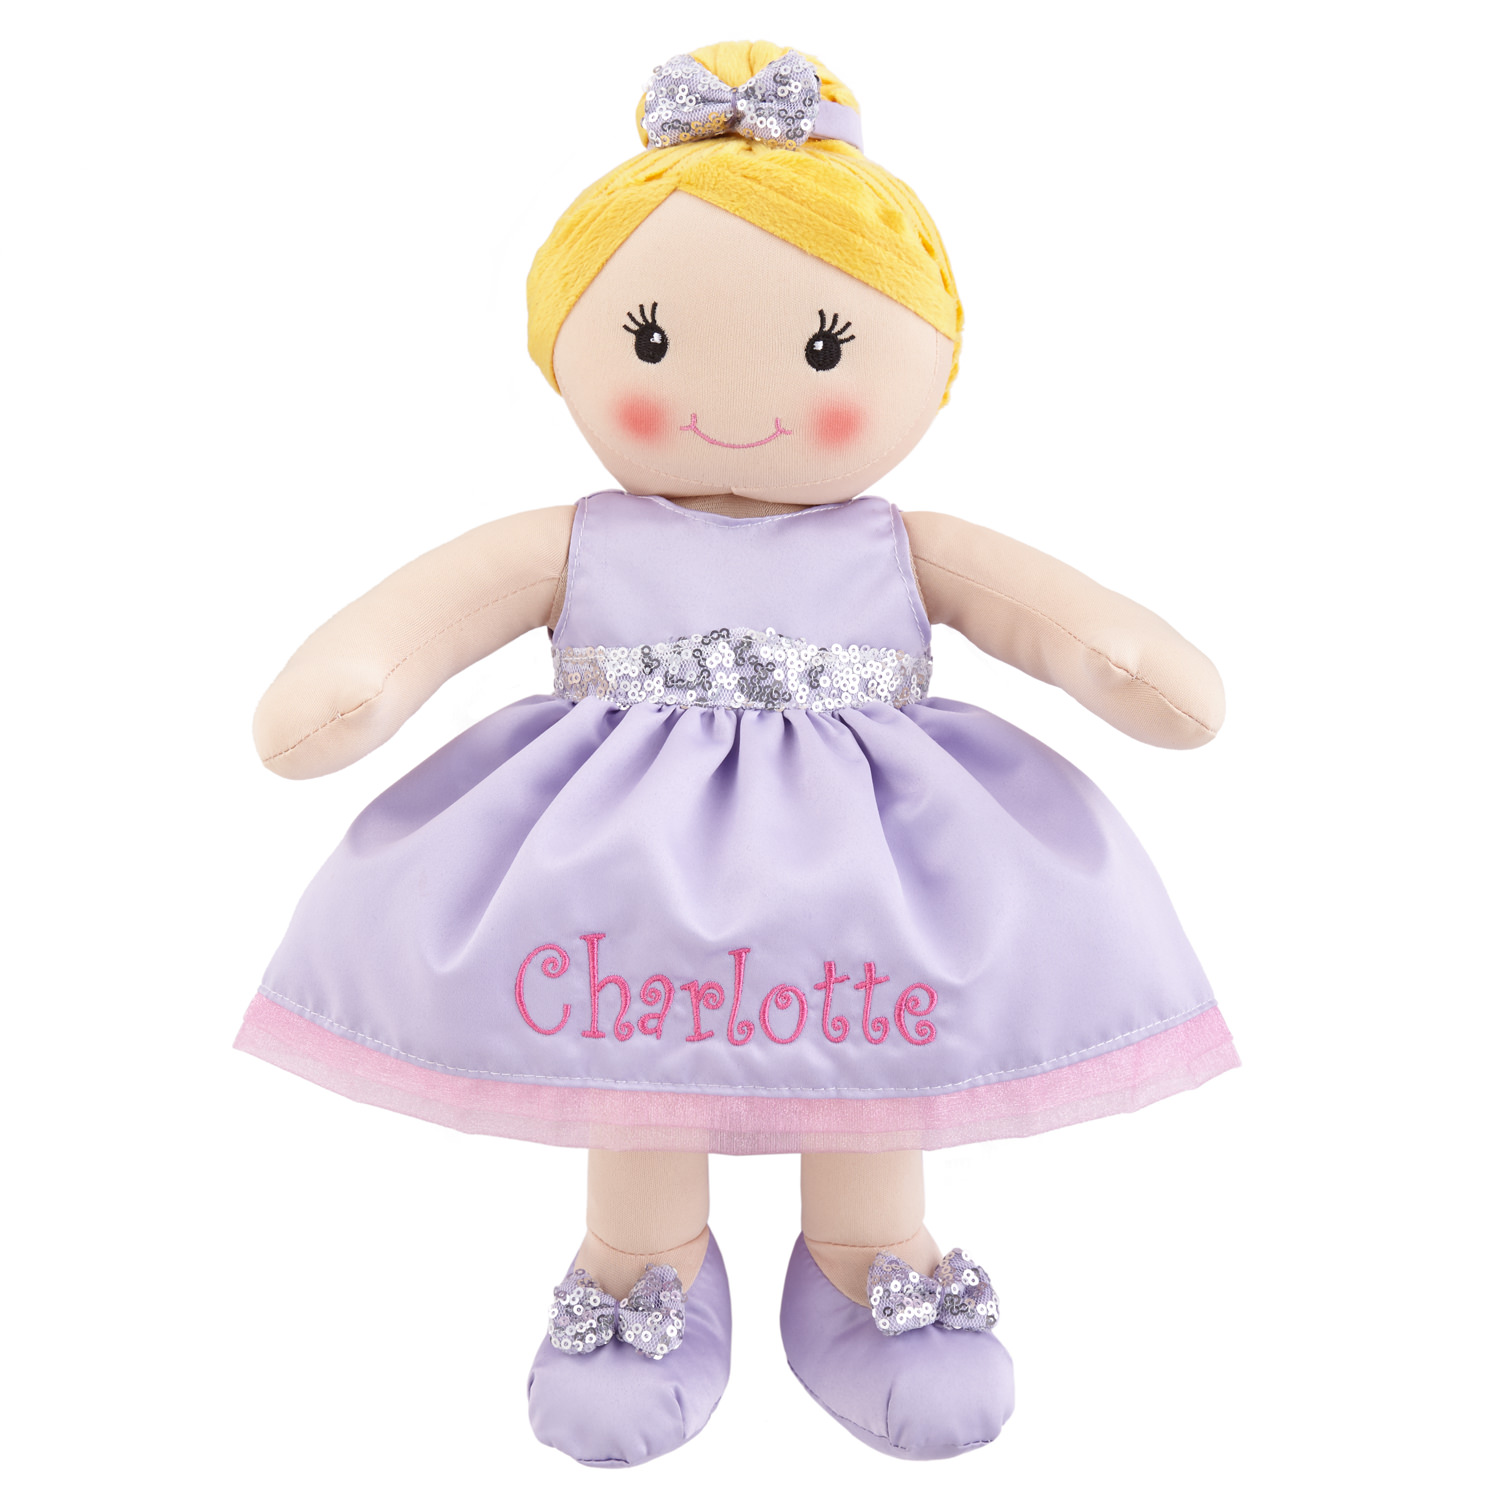 Personalized All Dressed Up™ Ballerina Rag Doll – Available in 3 Options